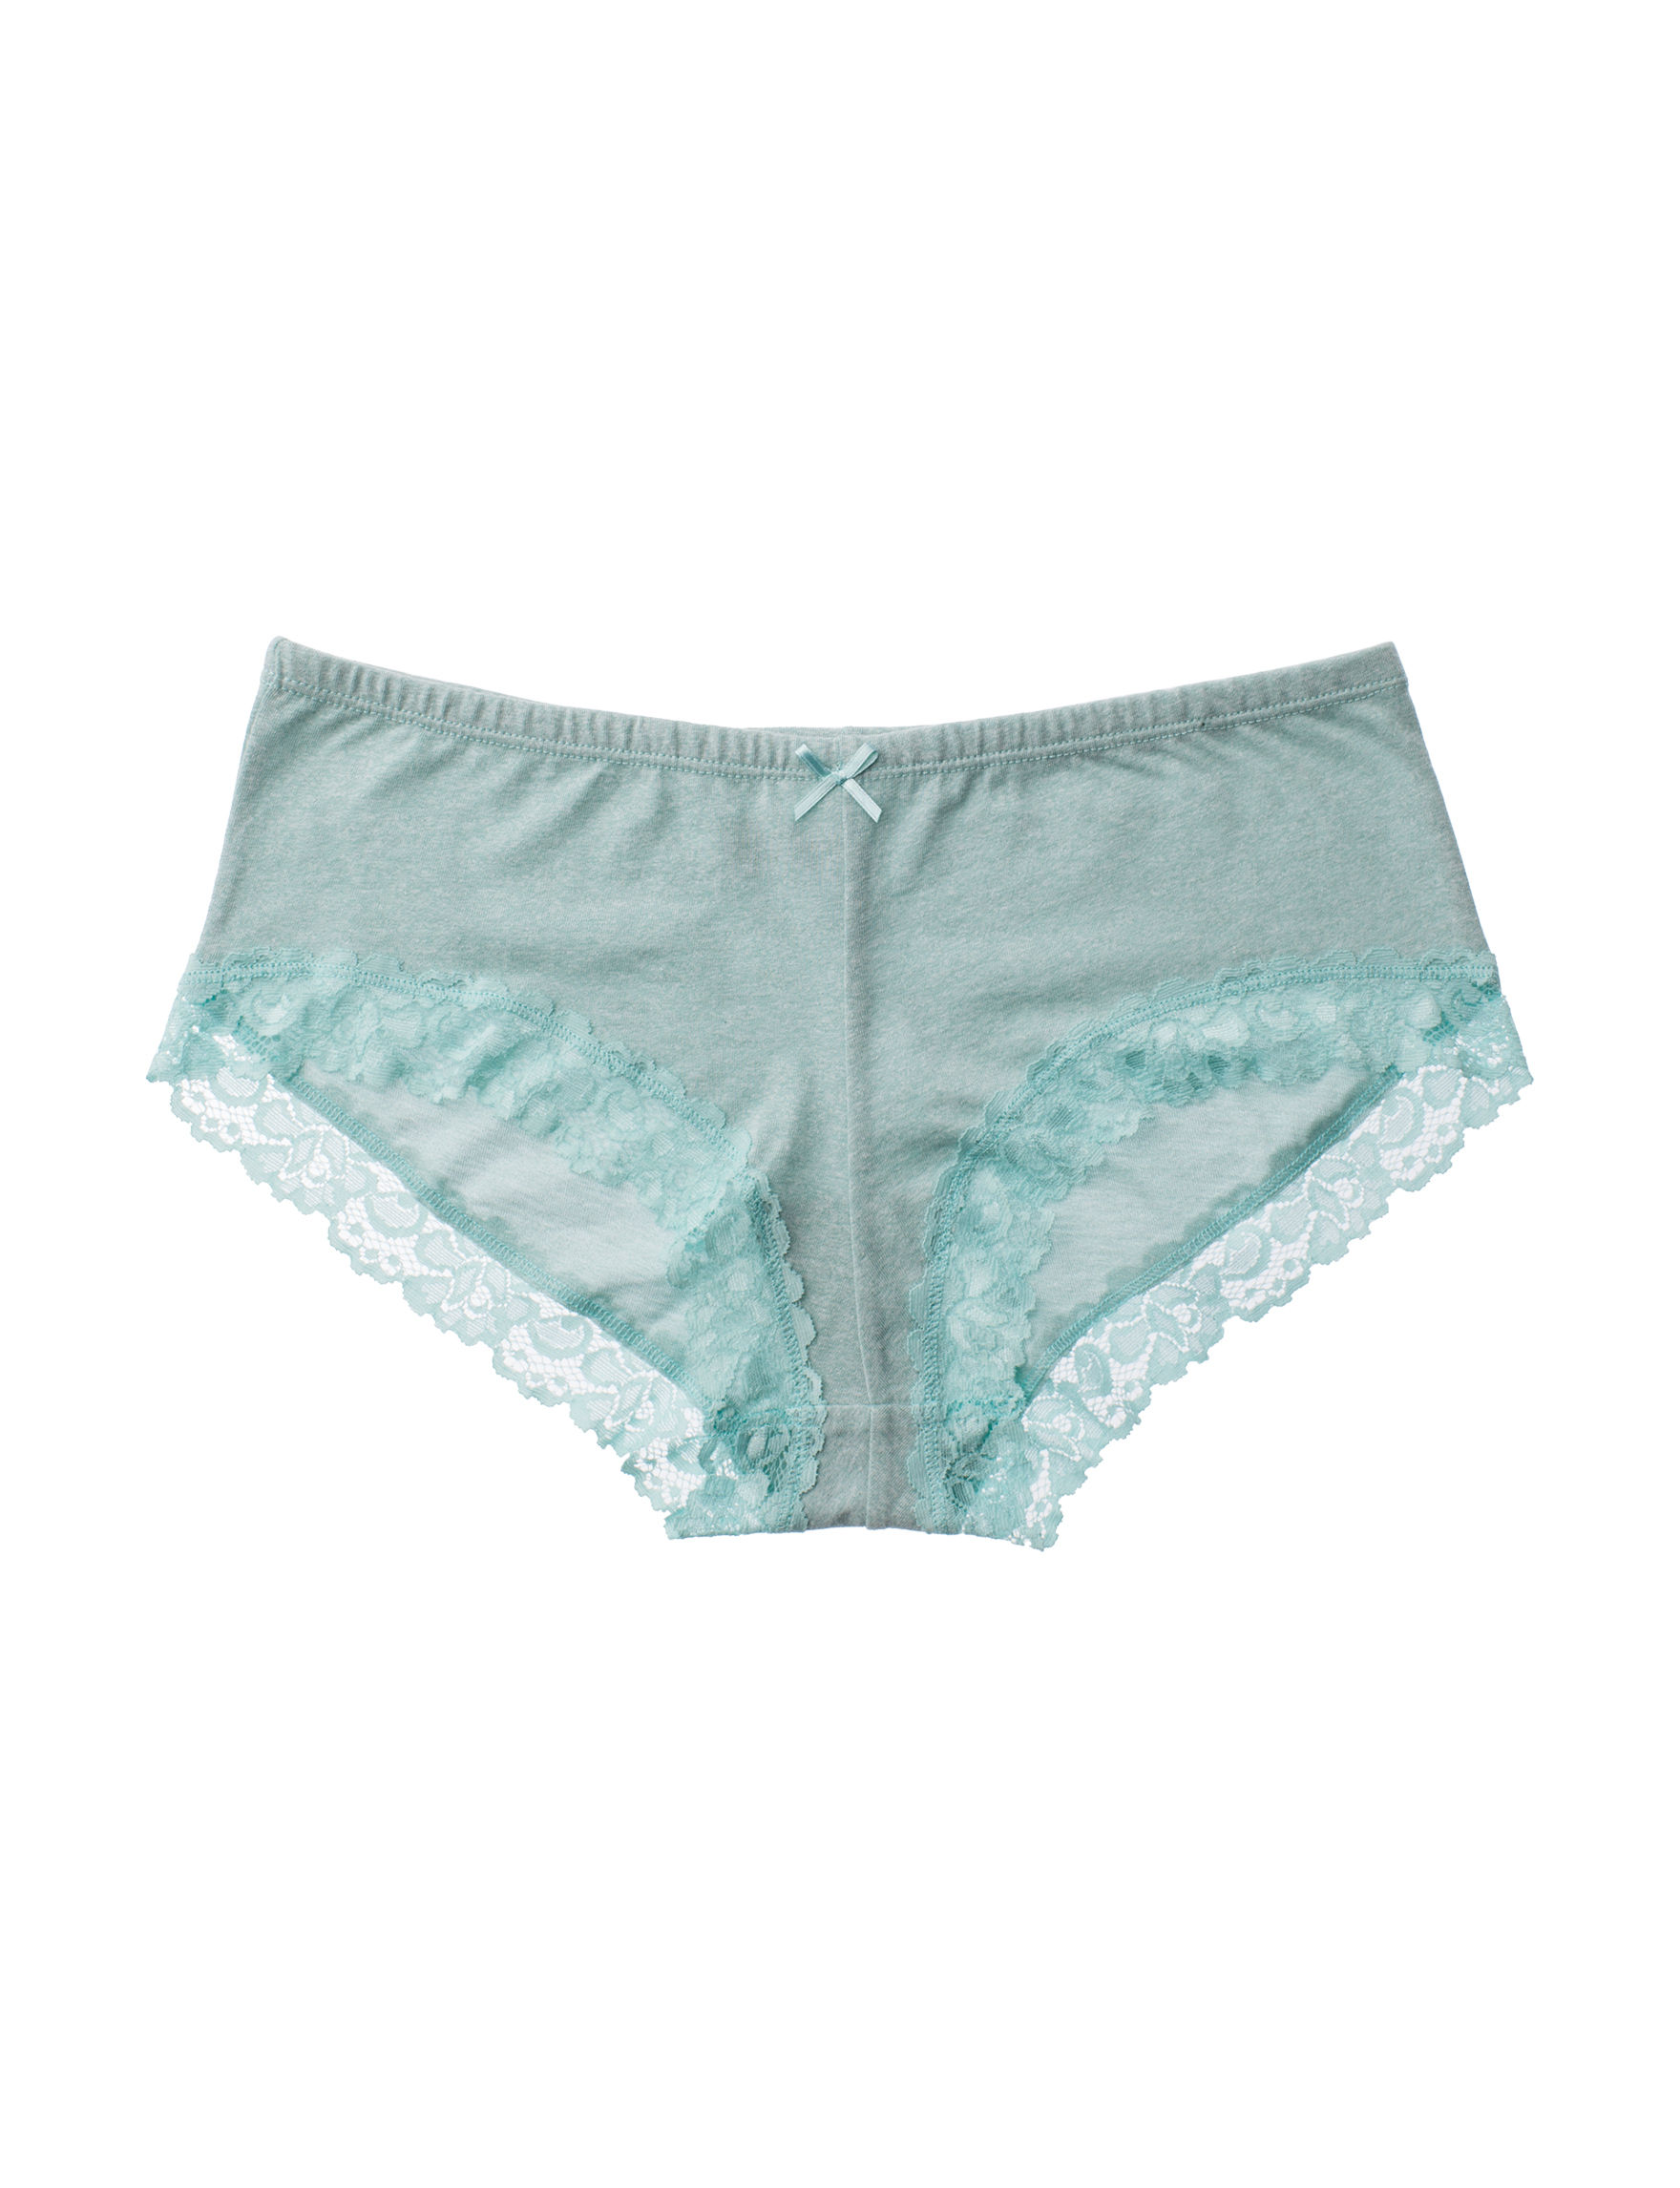 International Intimates Grey / Teal Panties Boyshort